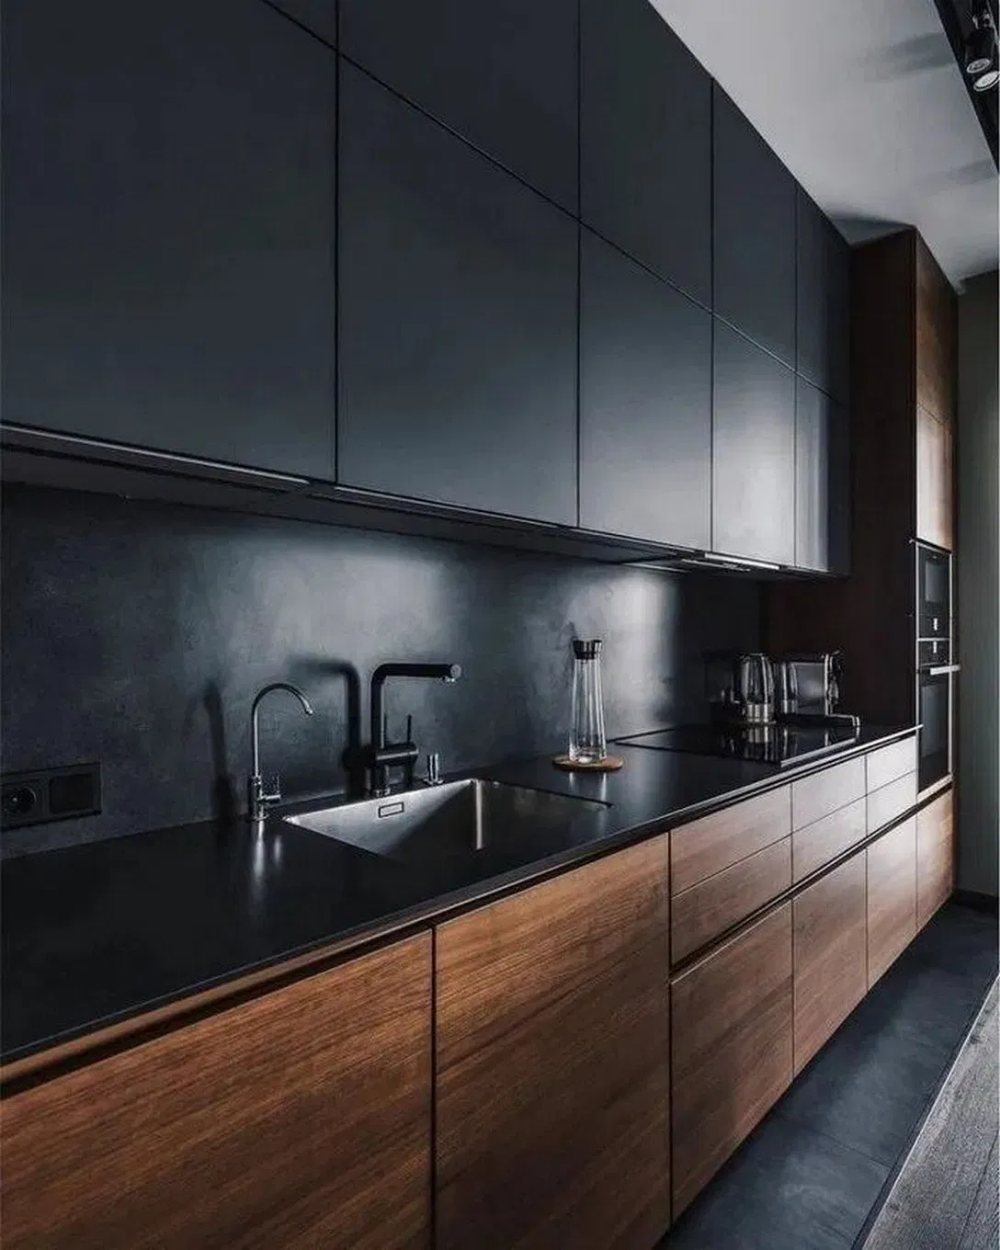 50 Amazing Black Kitchen Design Ideas 2020 Interior Design Kitchen Kitchen Design Modern Kitchen Design